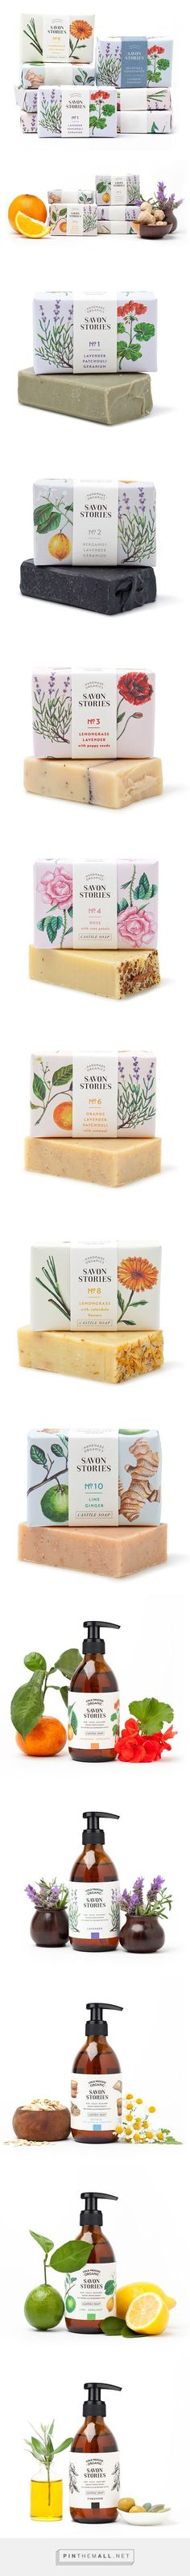 Savon Stories packaging on Behance by Menta curated by Packaging Diva PD. Savon Stories is an English company specialised in the handcraft of organic soaps produced in small batches. Identity Design, Graphic Design Branding, Label Design, Logo Design, Package Design, Soap Packaging, Pretty Packaging, Cosmetic Packaging, Brand Packaging